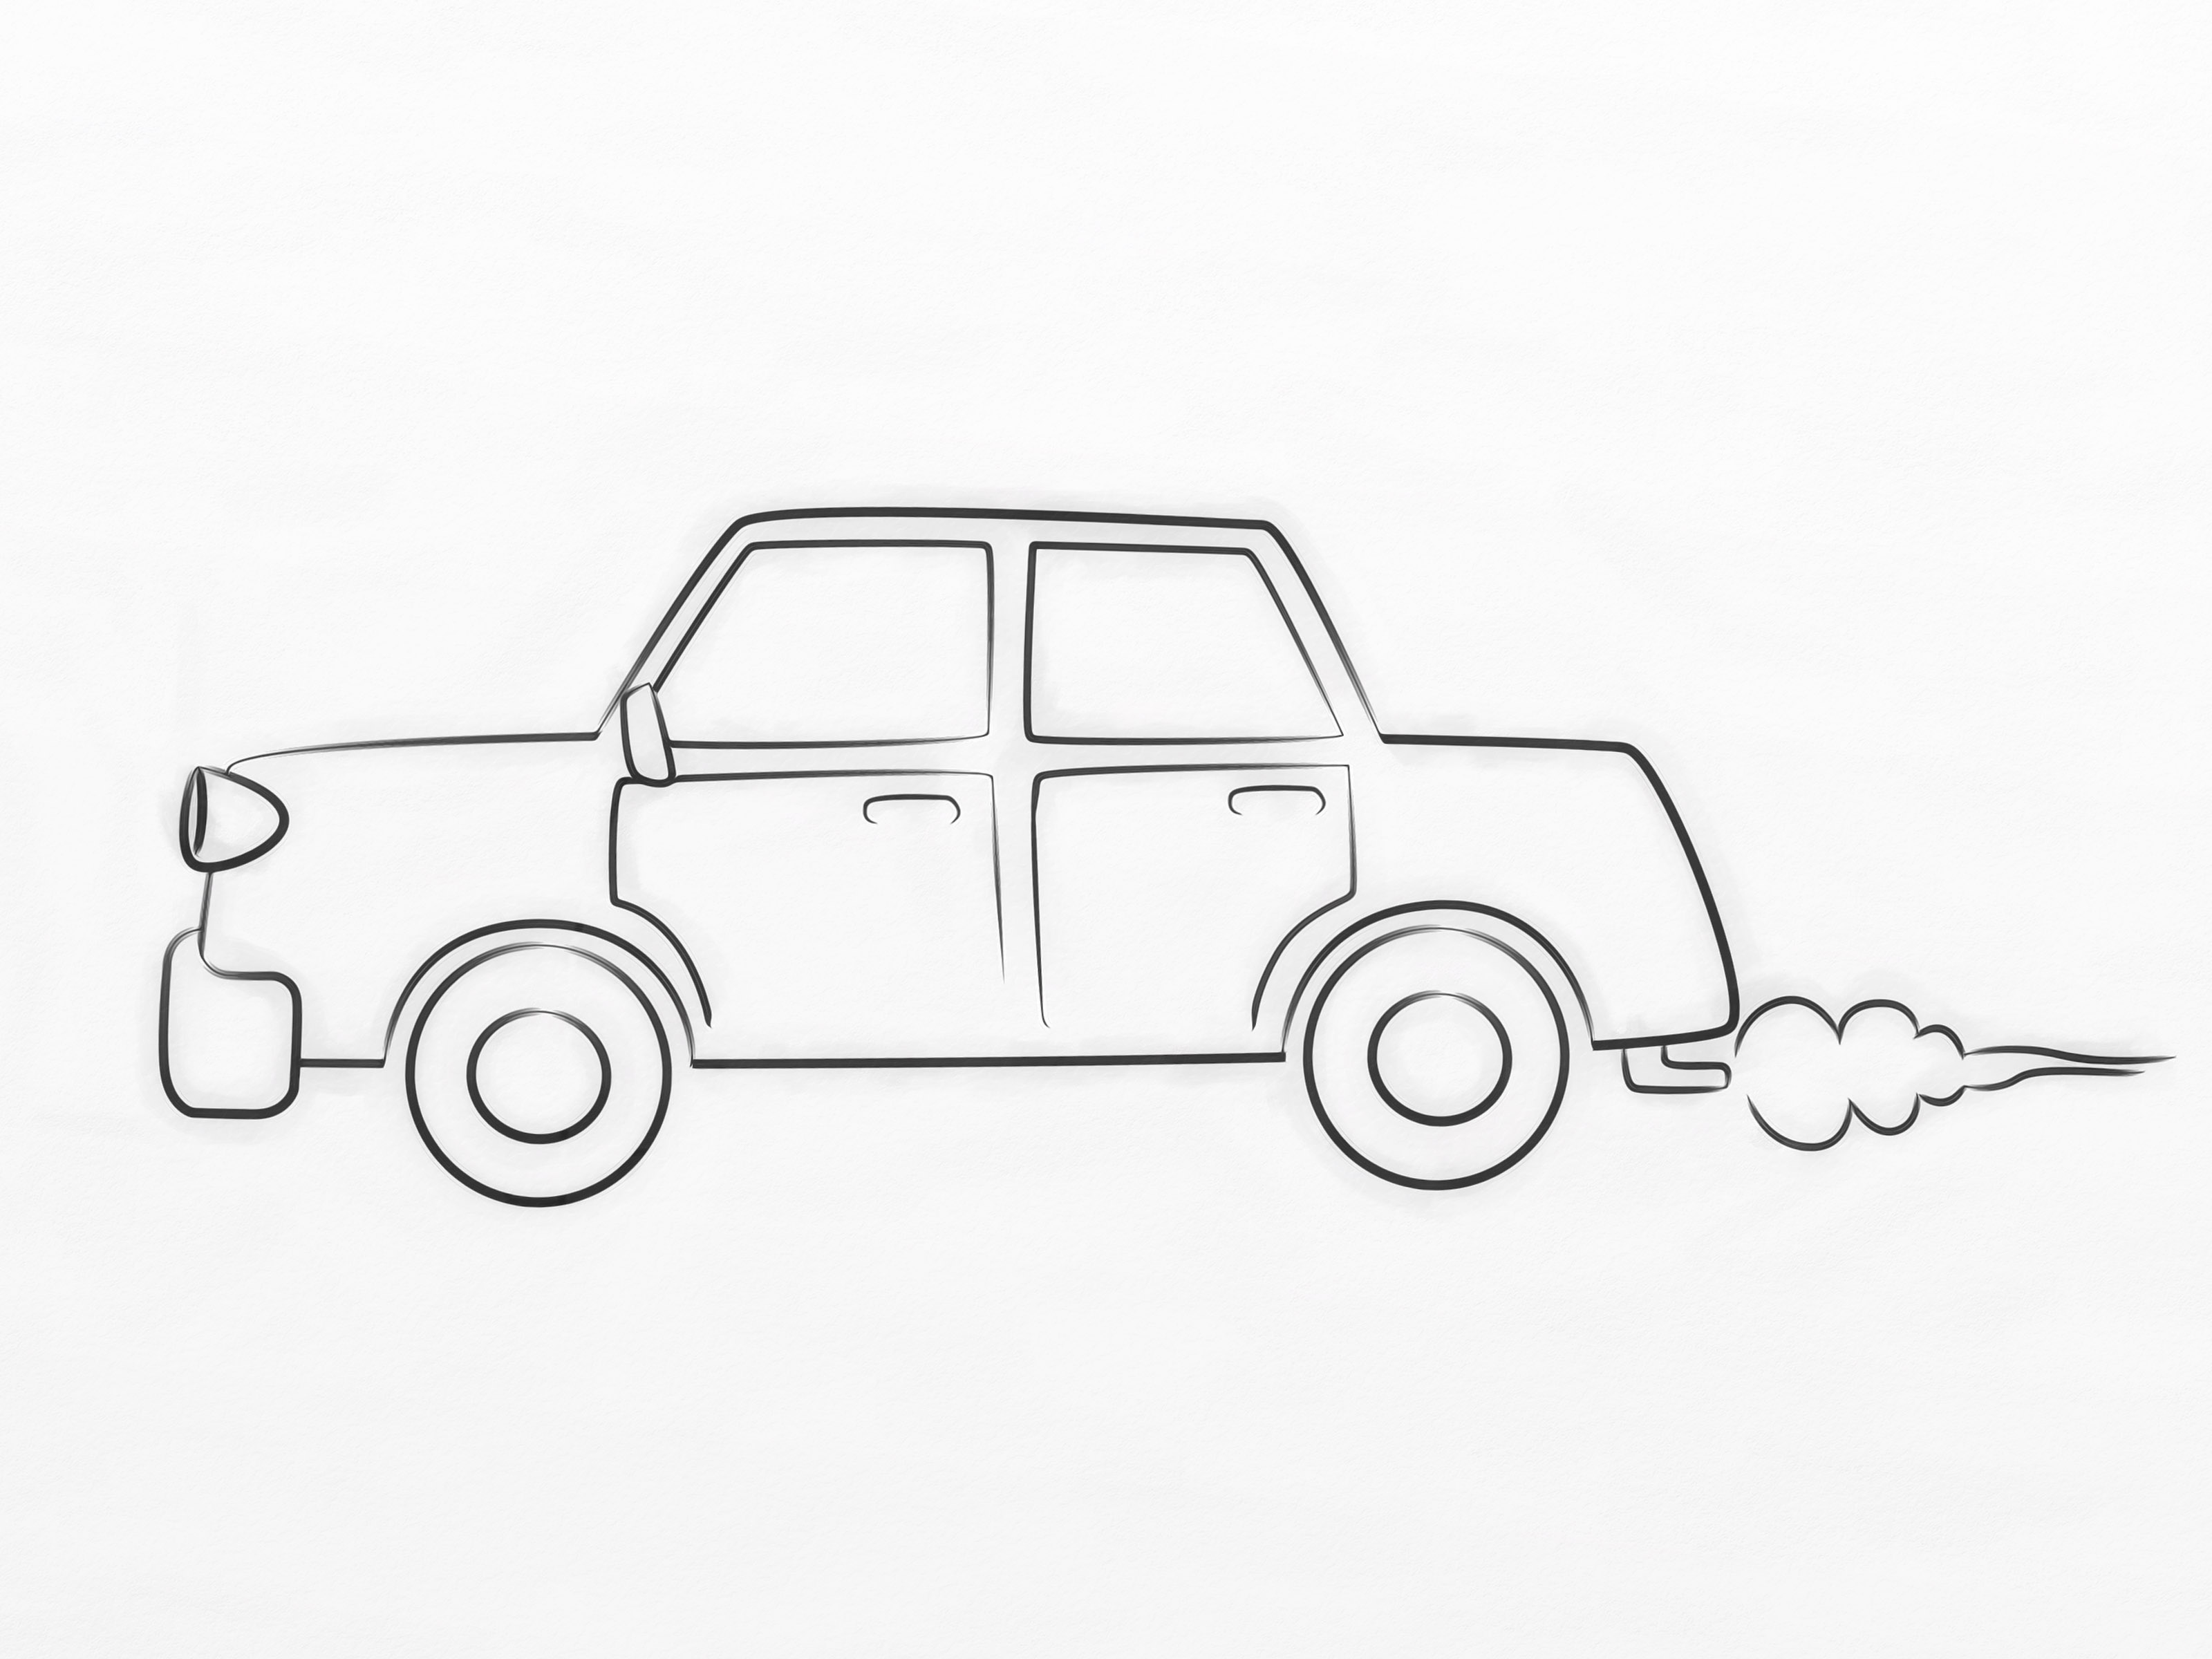 Front Of Car Drawing at GetDrawings.com   Free for personal use ...